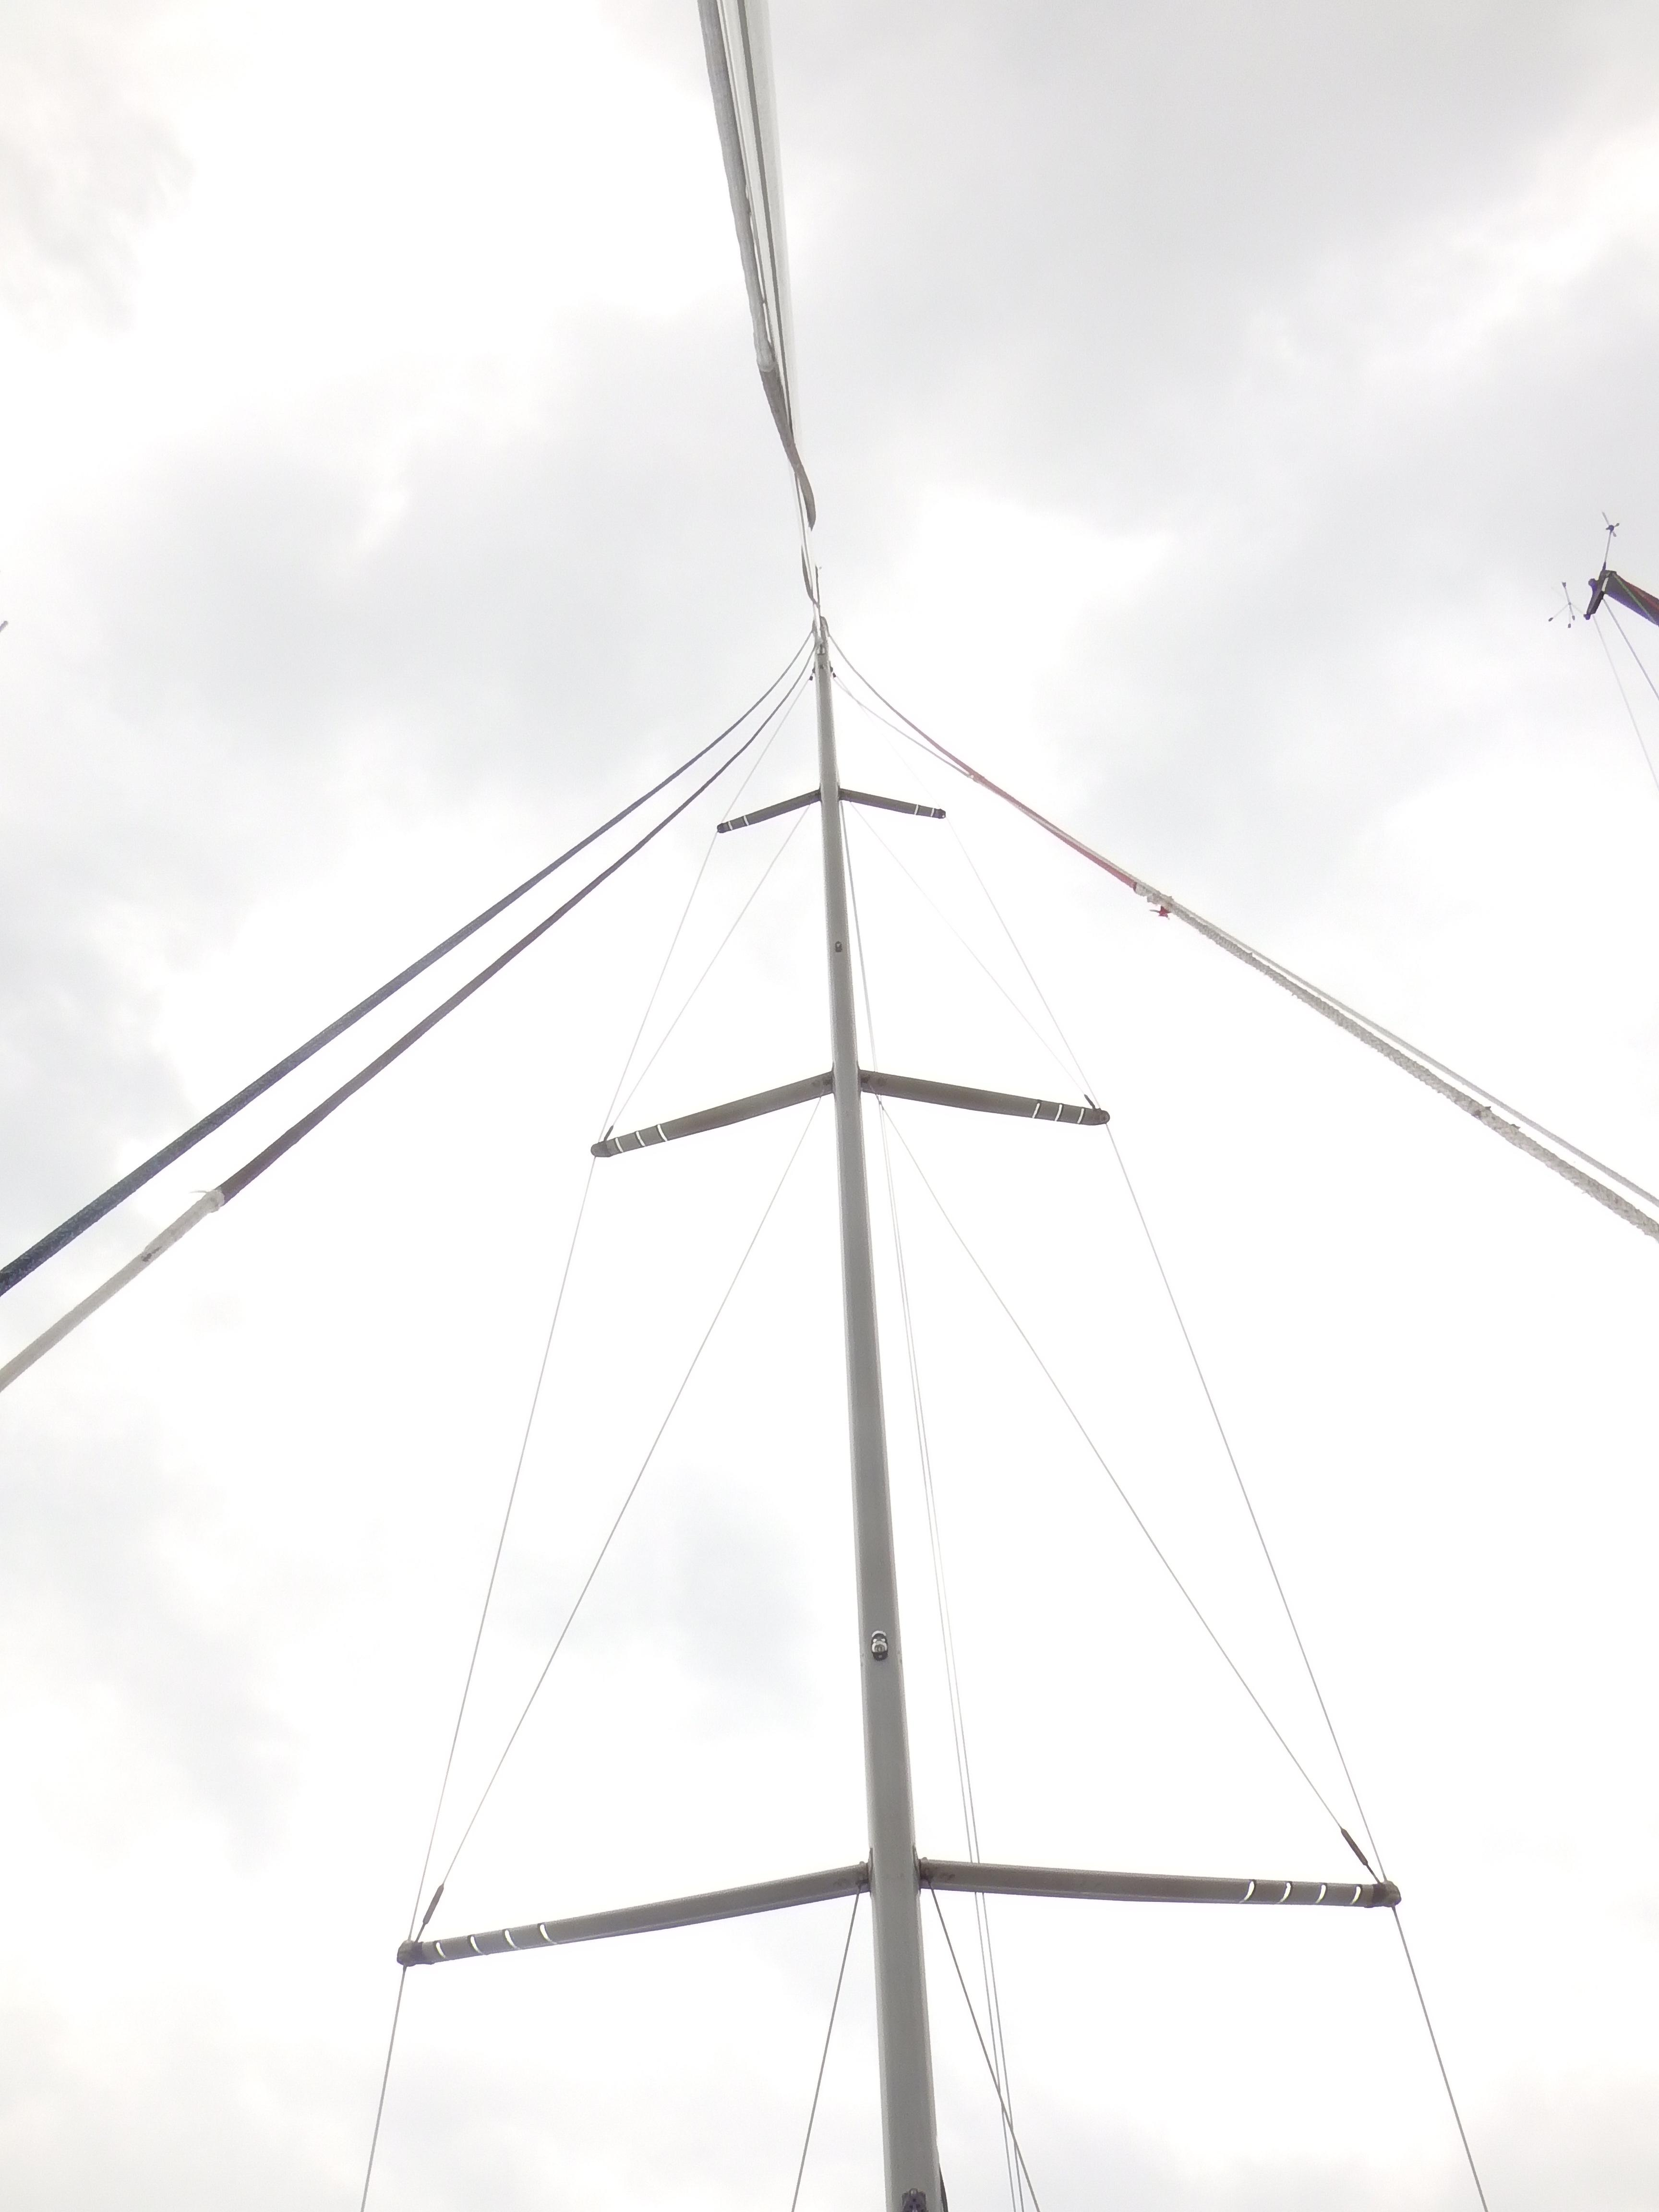 2001 Beneteau First 40 7 Sail Boat For Sale